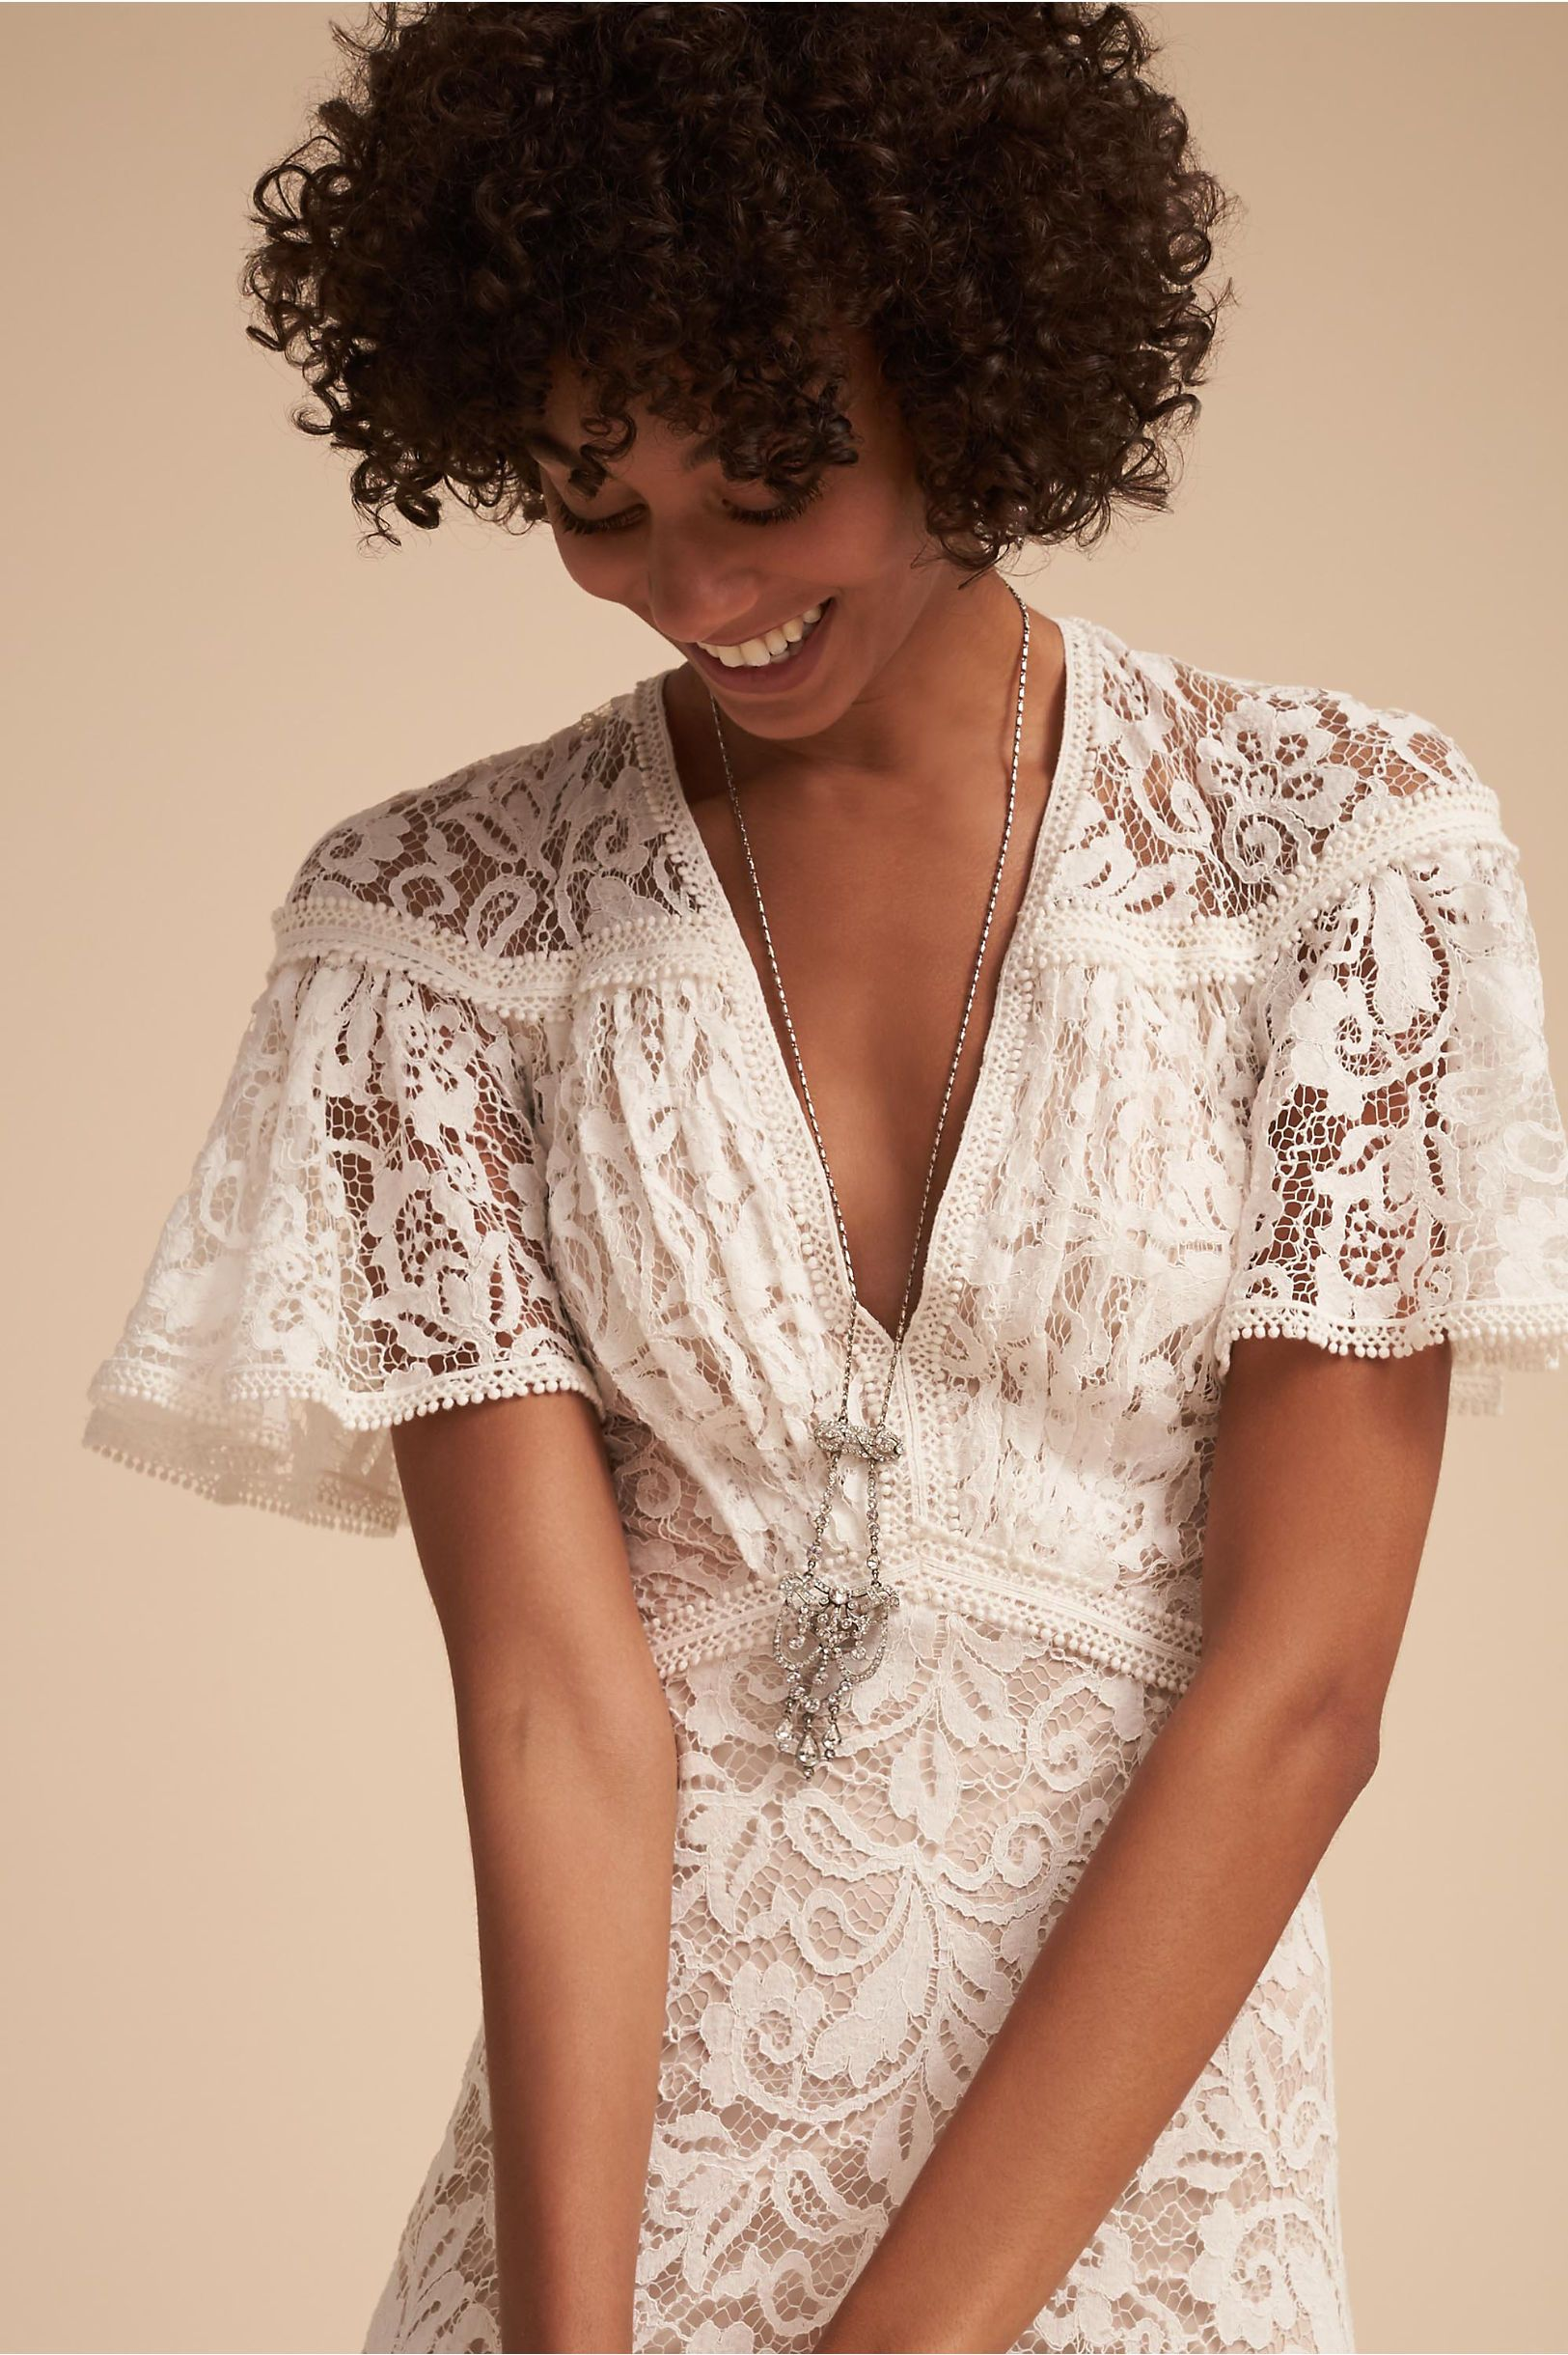 Lace dress for pregnant  Copeland Gown Ivory in Sale  BHLDN  Bhldn  Pinterest  Ivory and